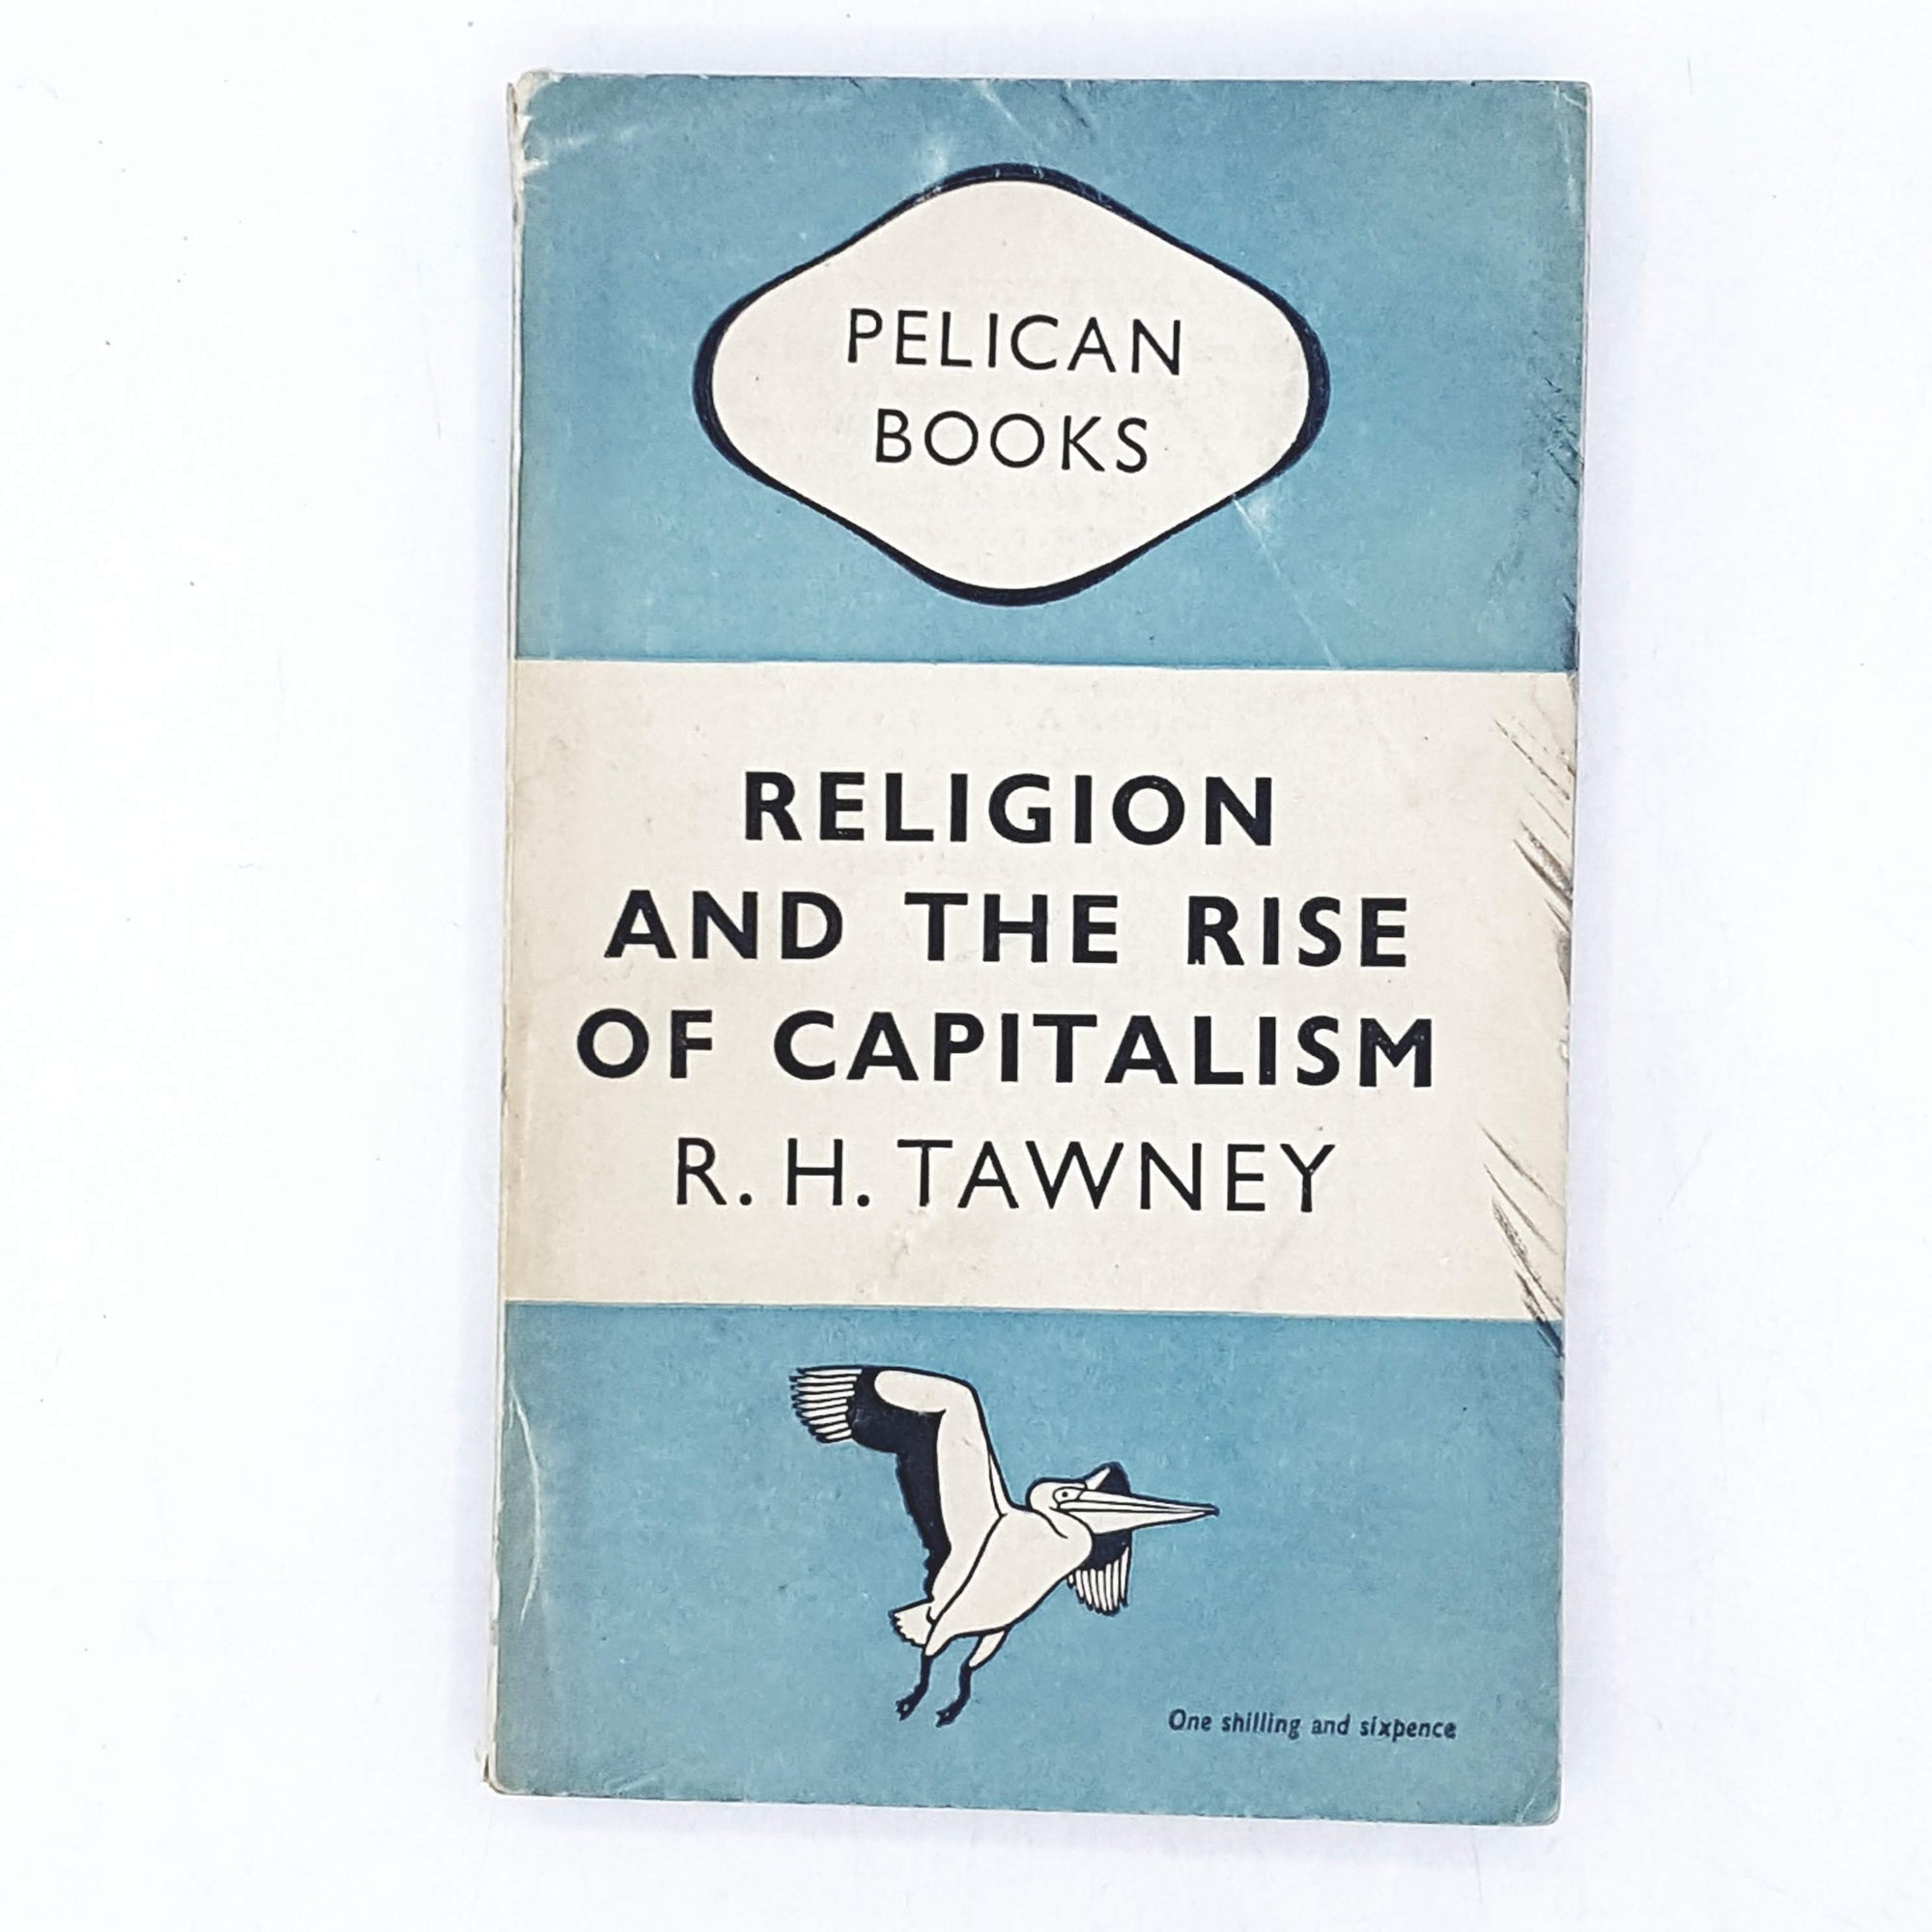 Religion and the Rise of Capitalism by R. H. Tawney 1948